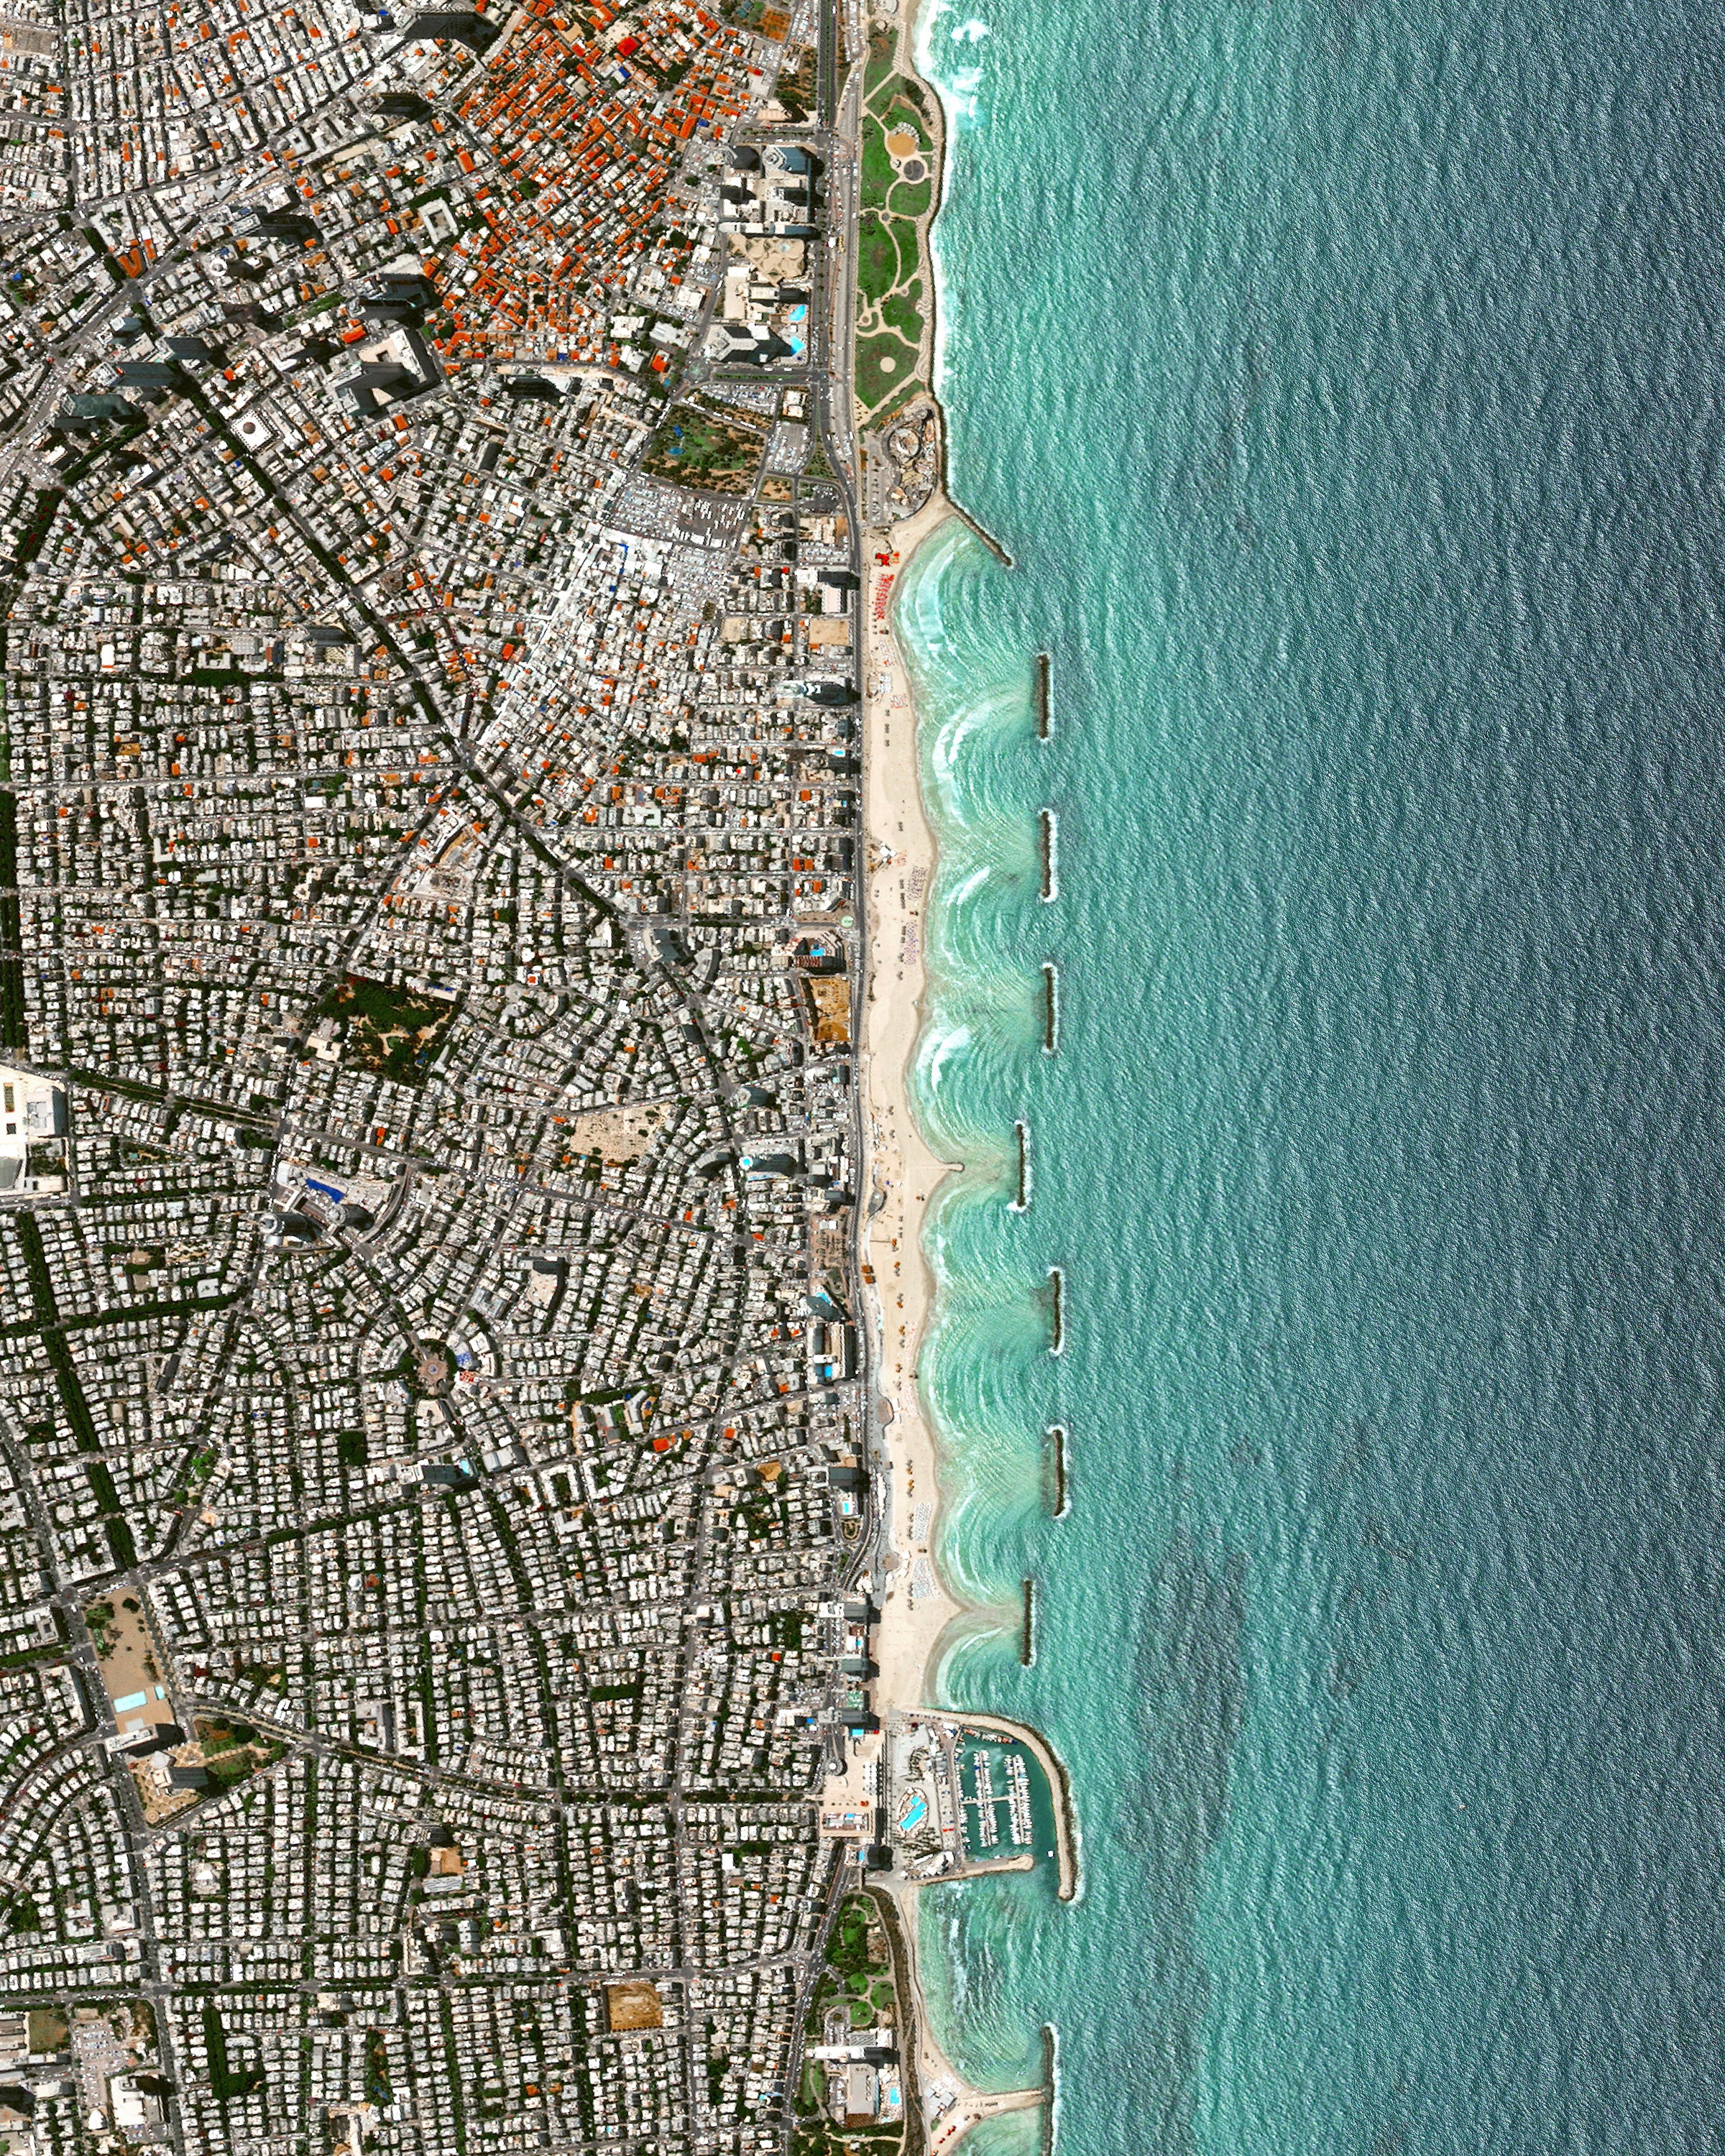 "Located on the coast of the Mediterranean Sea, Tel Aviv is the second most populous city in Israel and is recognized as the country's financial center and a major technology hub. With a city plan dating back to the 1920's, Tel Aviv was constructed with a hierarchical system of streets laid out in a grid and large blocks consisting of small-scale dwellings that surround central, open spaces.  32°04'42.0""N, 34°46'08.4""E  Source imagery: DigitalGlobe"